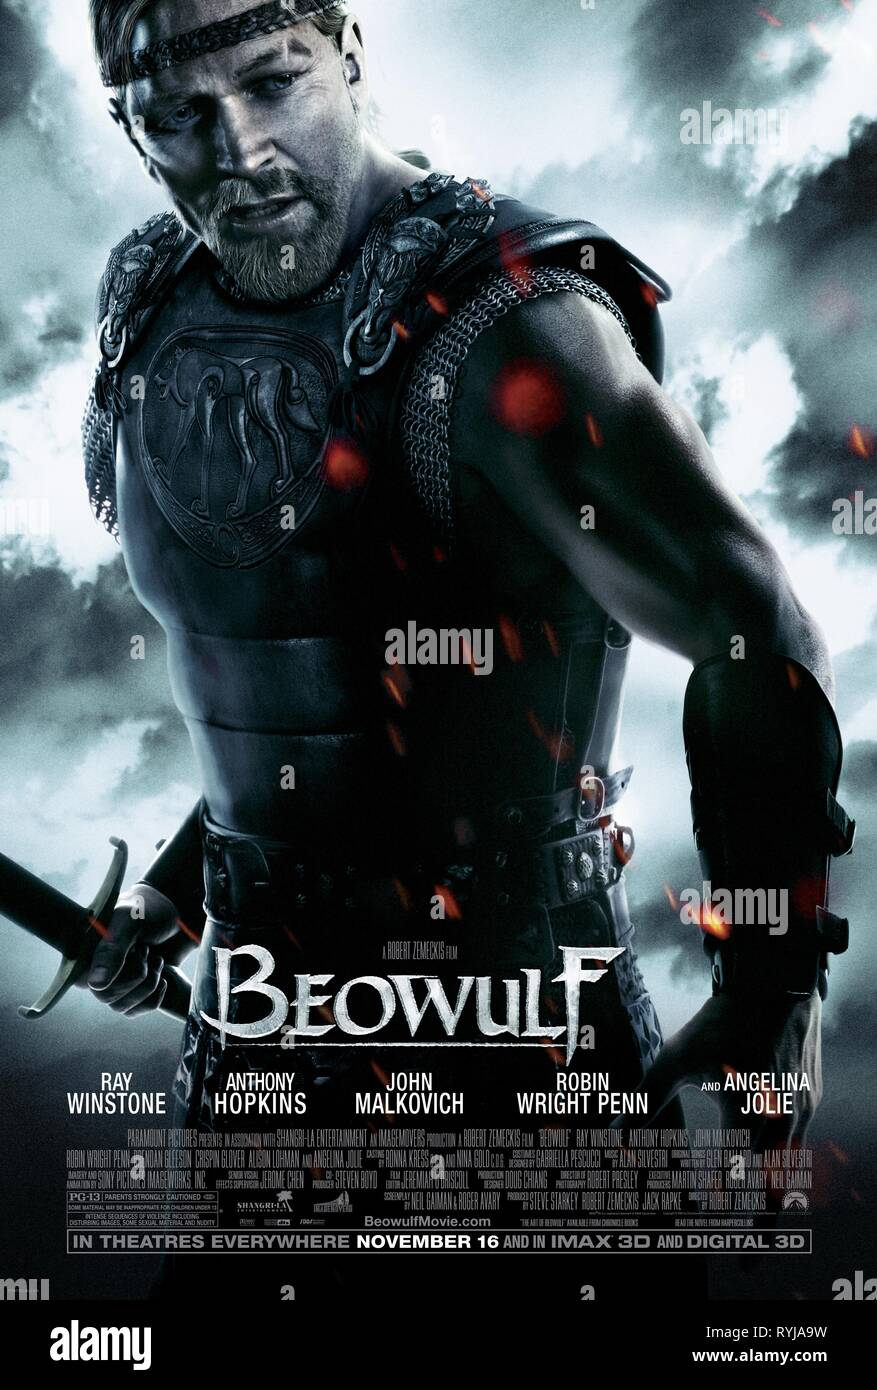 BEOWULF POSTER, BEOWULF, 2007 - Stock Image